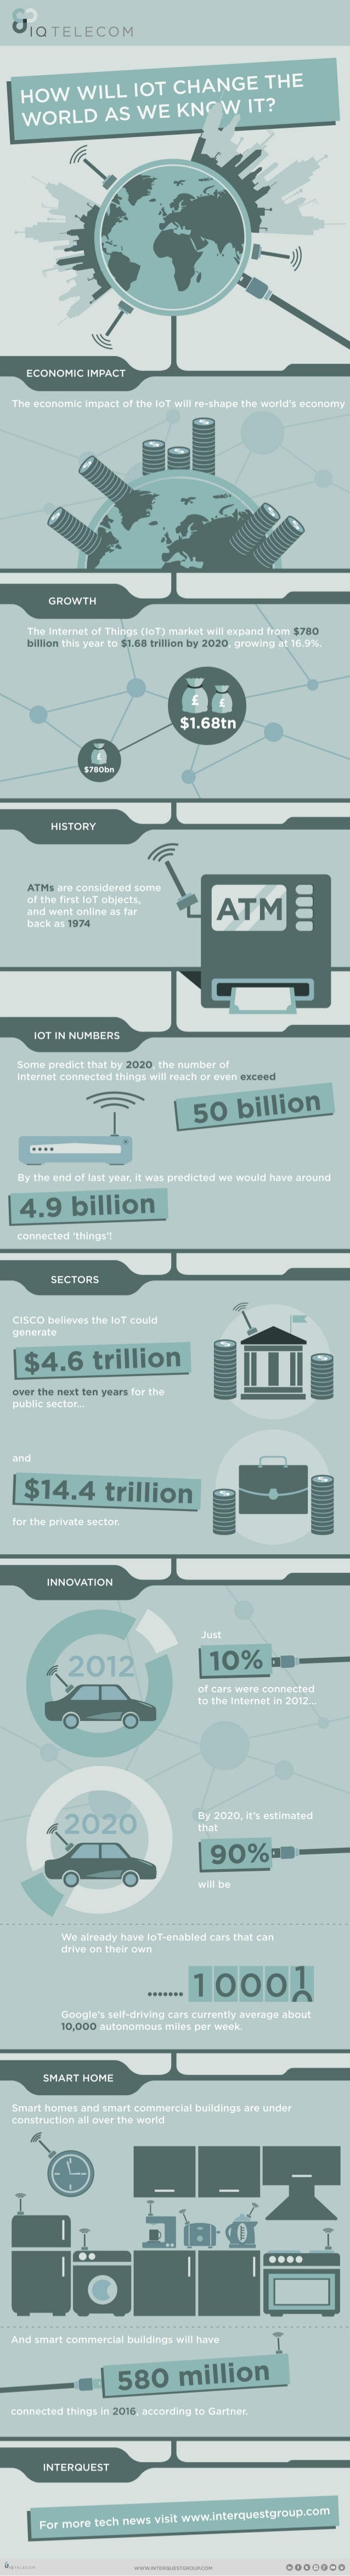 i ECONOMIC IMPACT  The economic impact of the loT will re—shape the world's economy  'E:   1 GROWTH  The Internet of Thing...